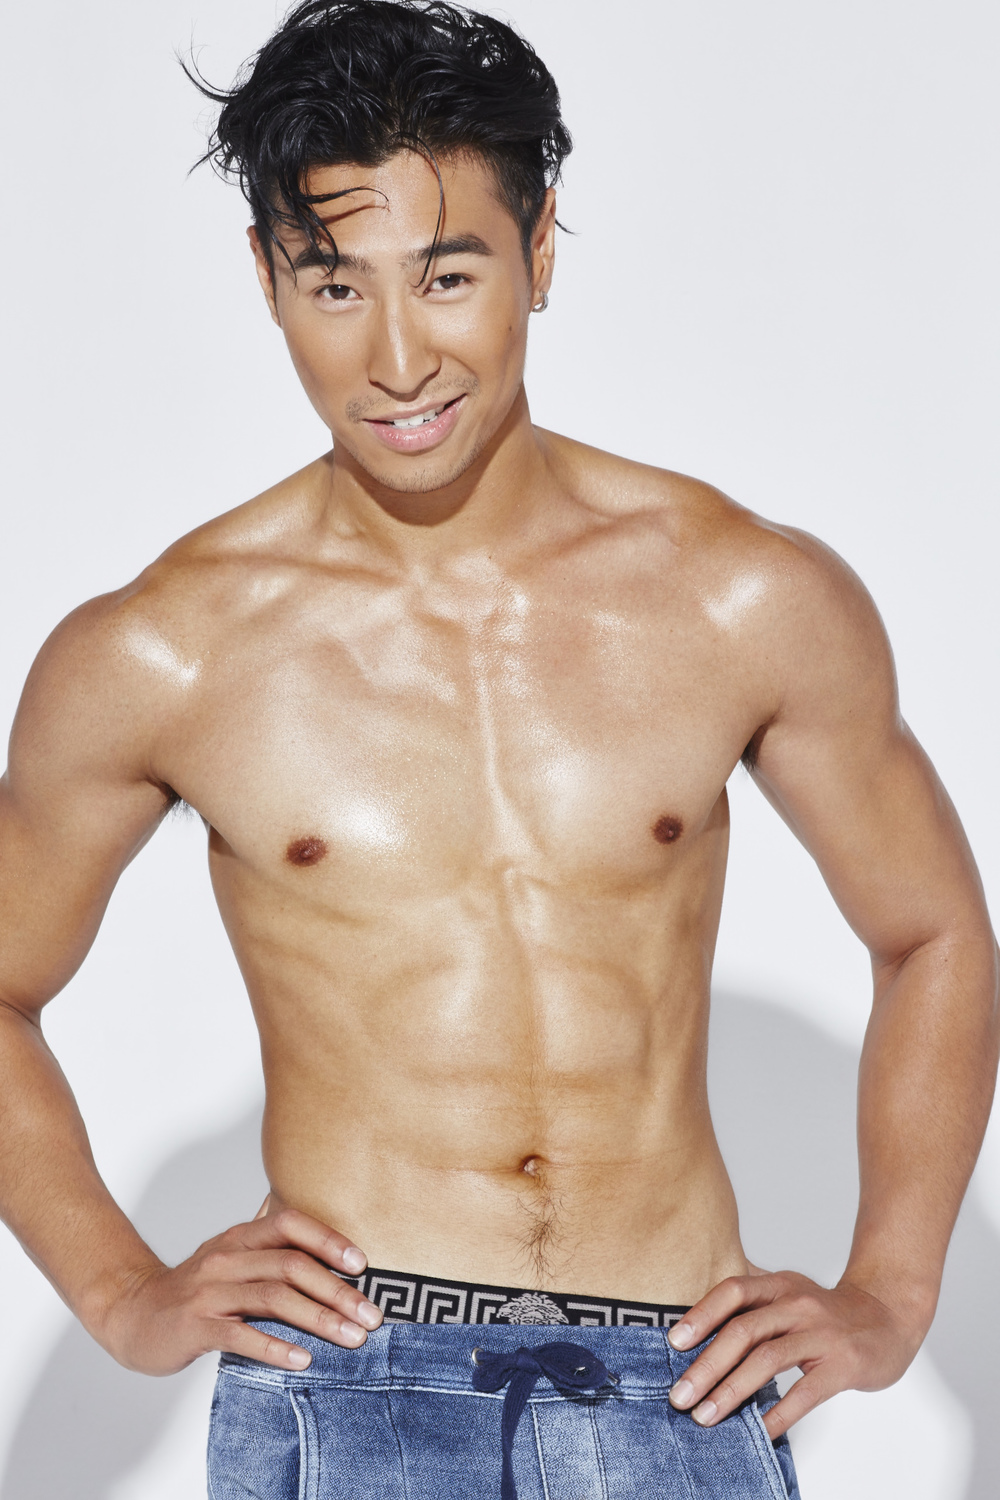 2015_10_09_Chris_Pang8656.jpg